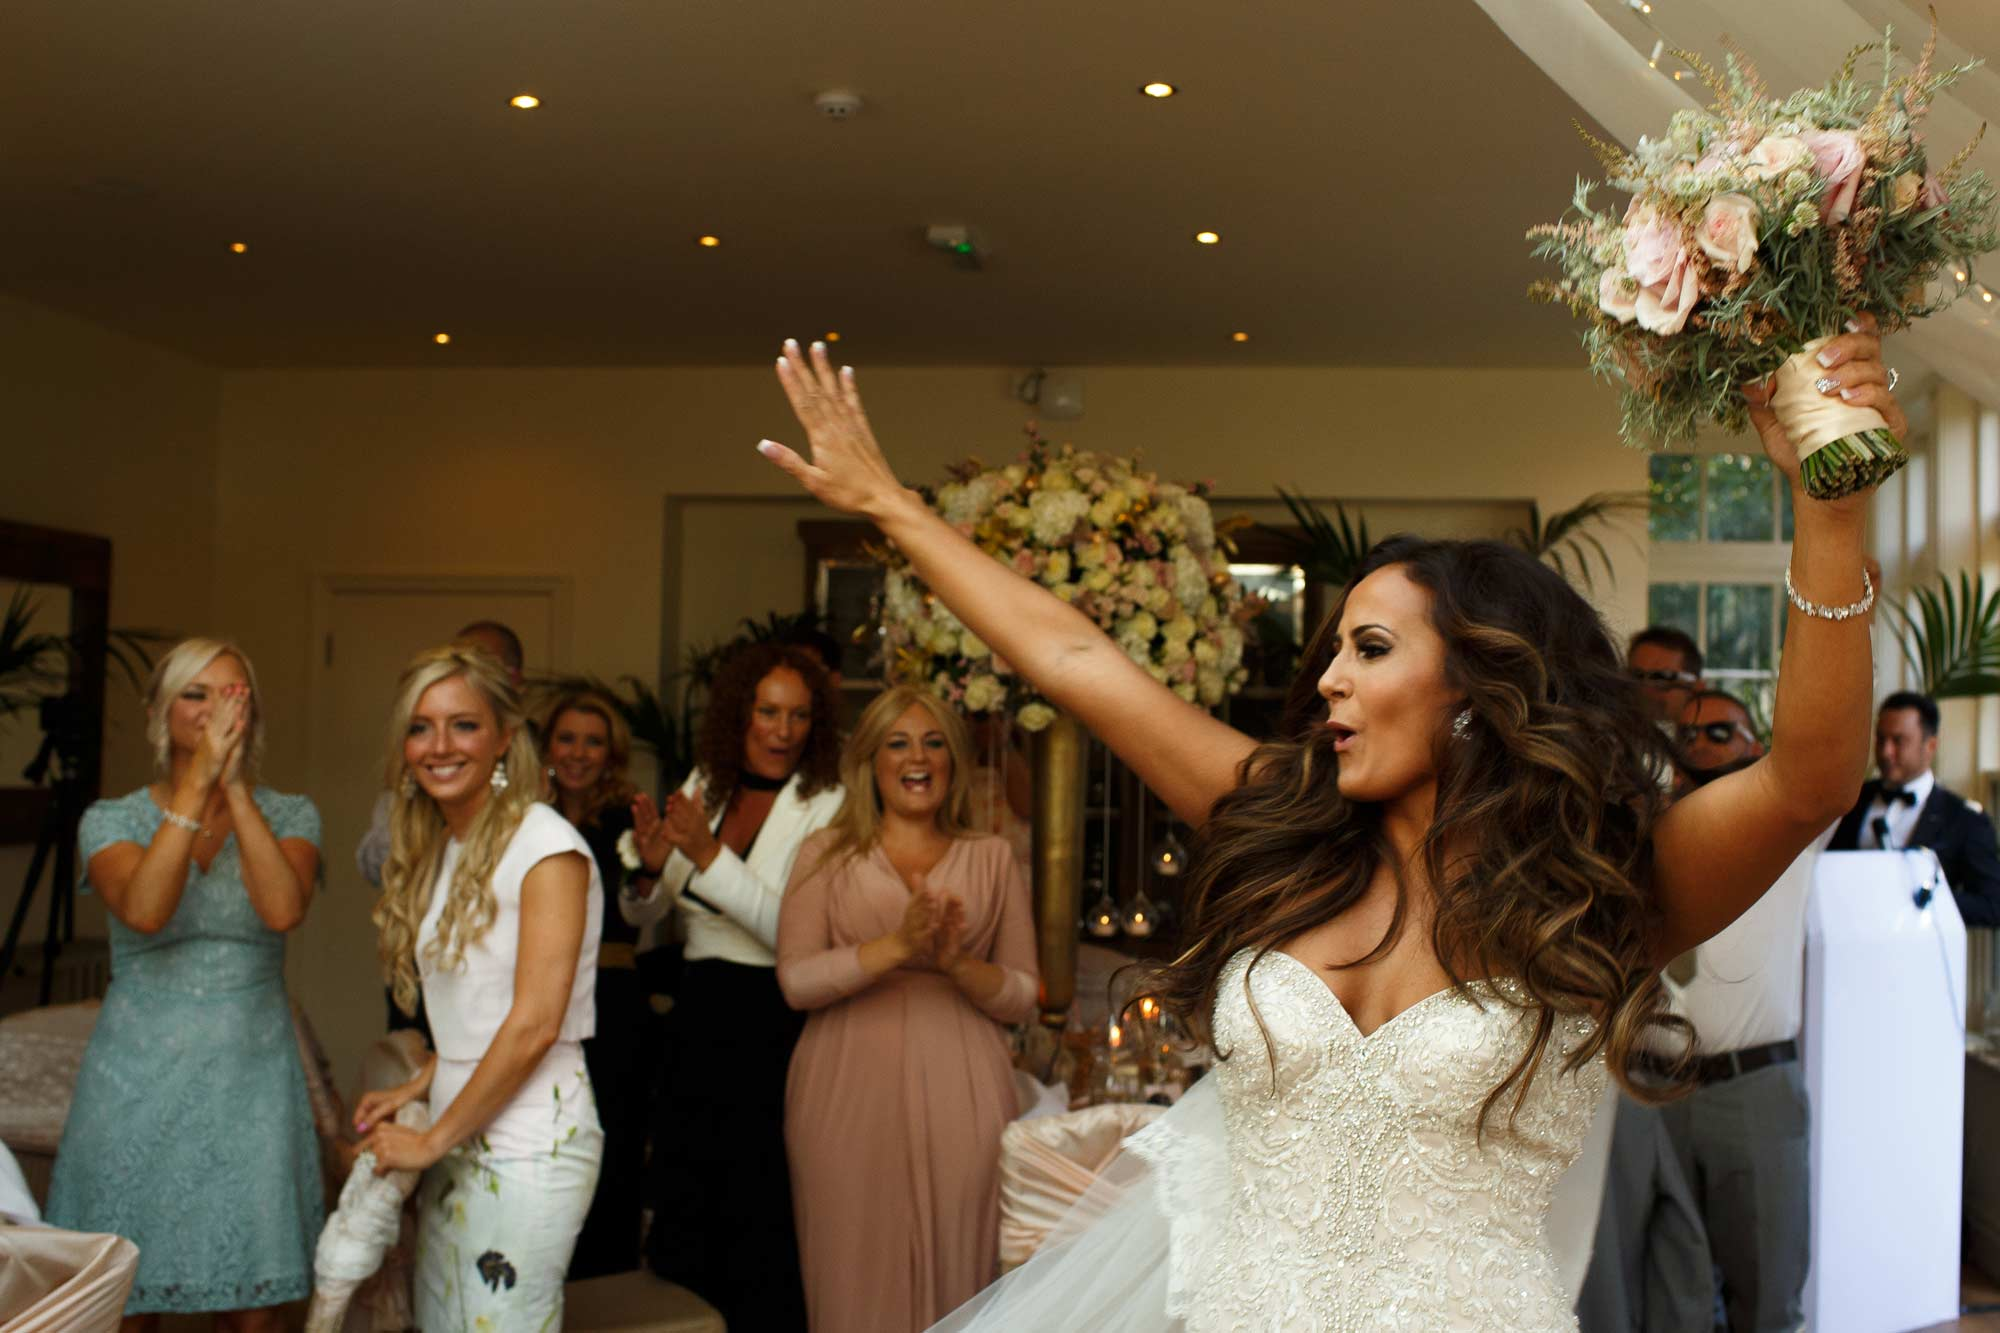 Bride partying as she enters the room at Mitton Hall Wedding